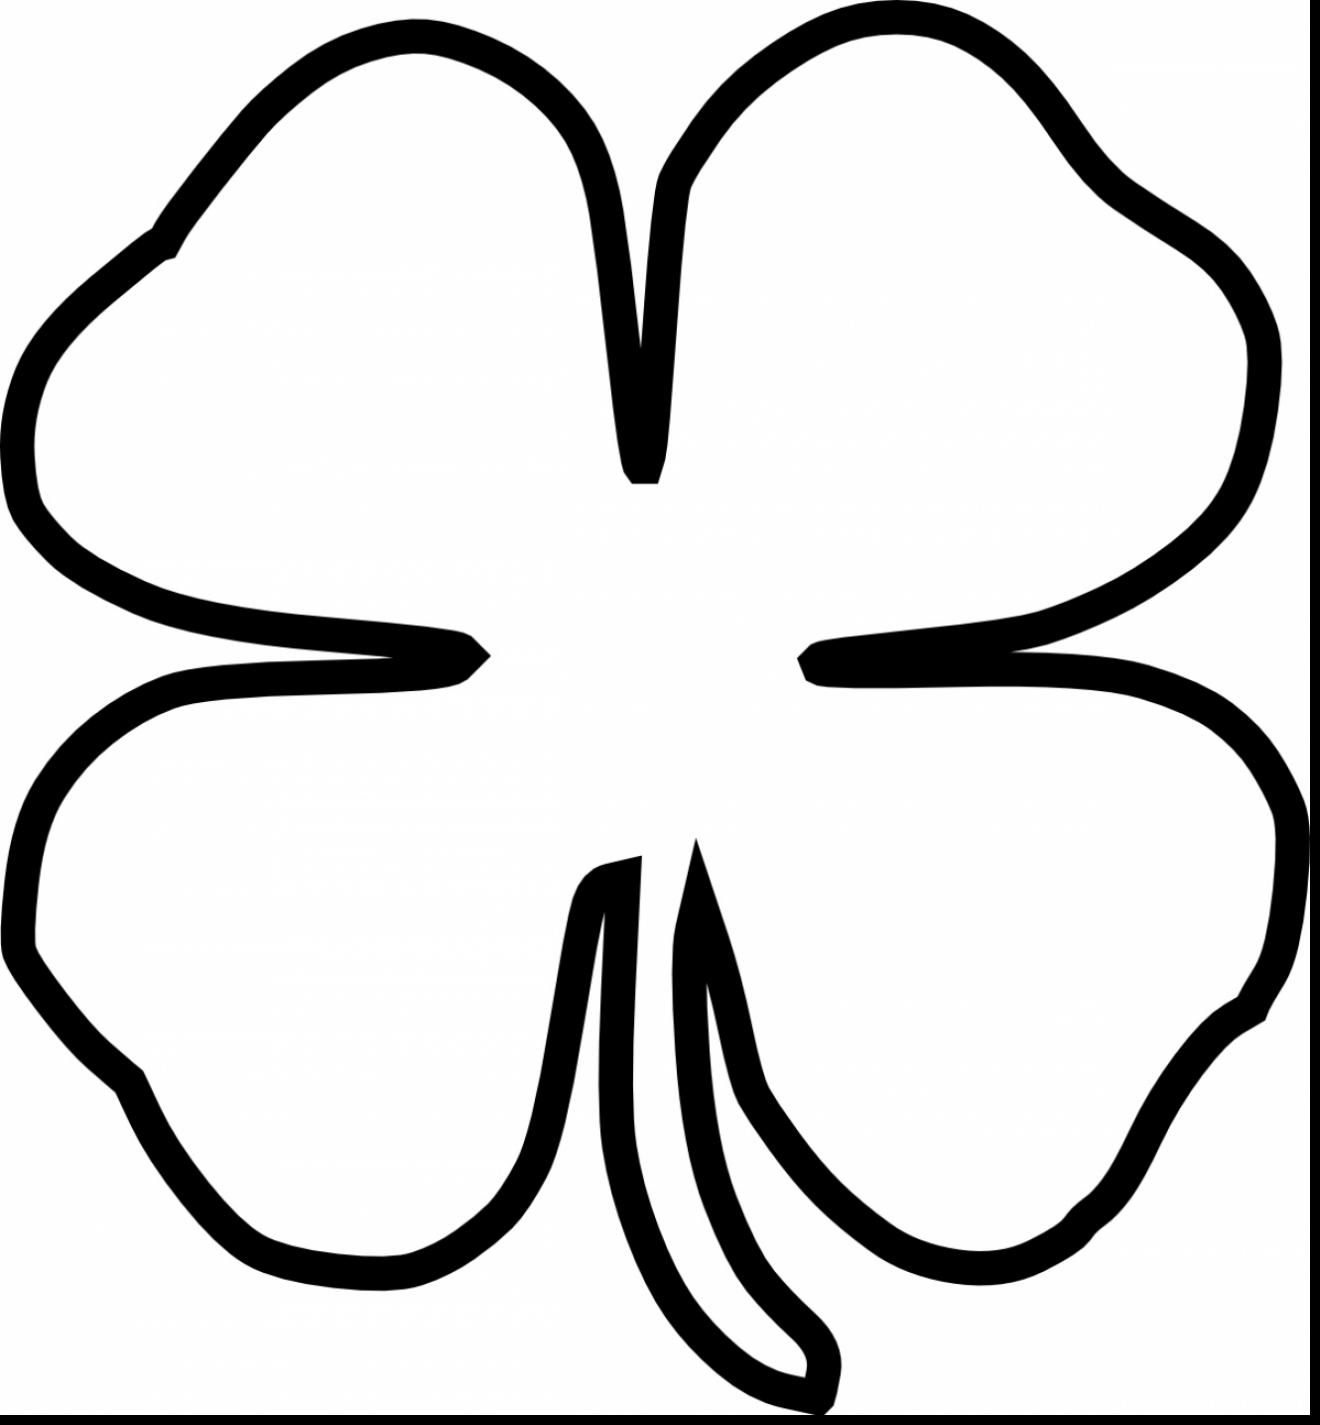 1320x1425 Surprising Four Leaf Clover Outline Clip Art With Four Leaf Clover